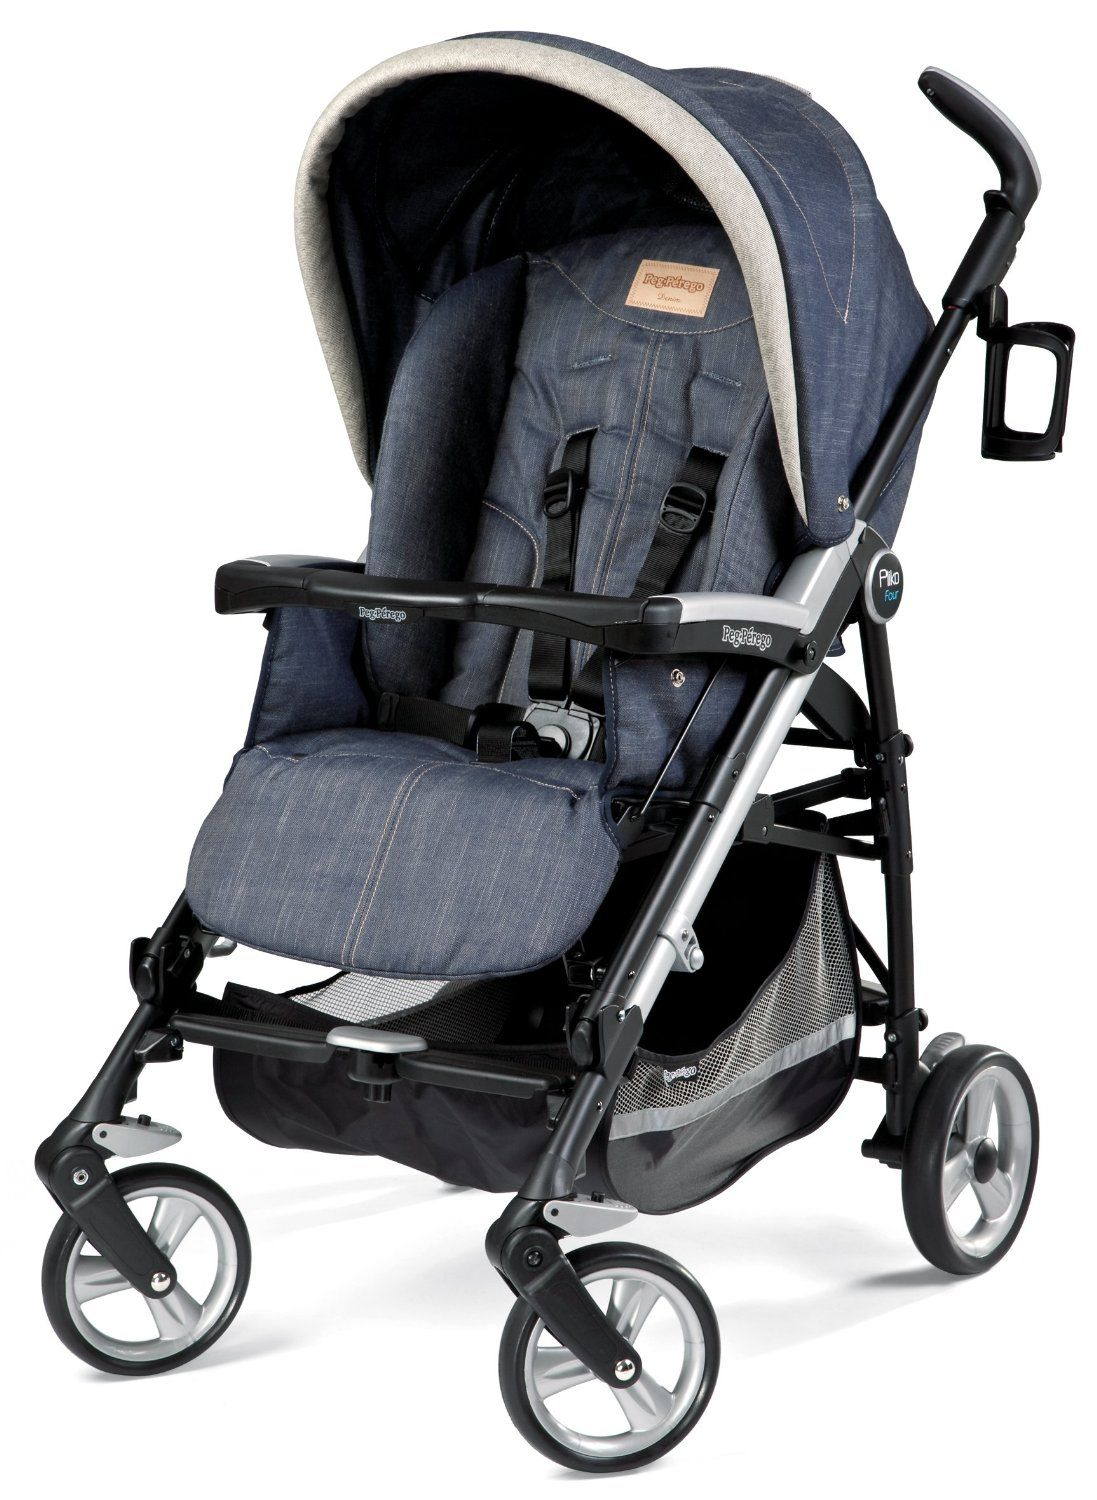 Peg Perego Si Lightweight Stroller 2014 Review Baby